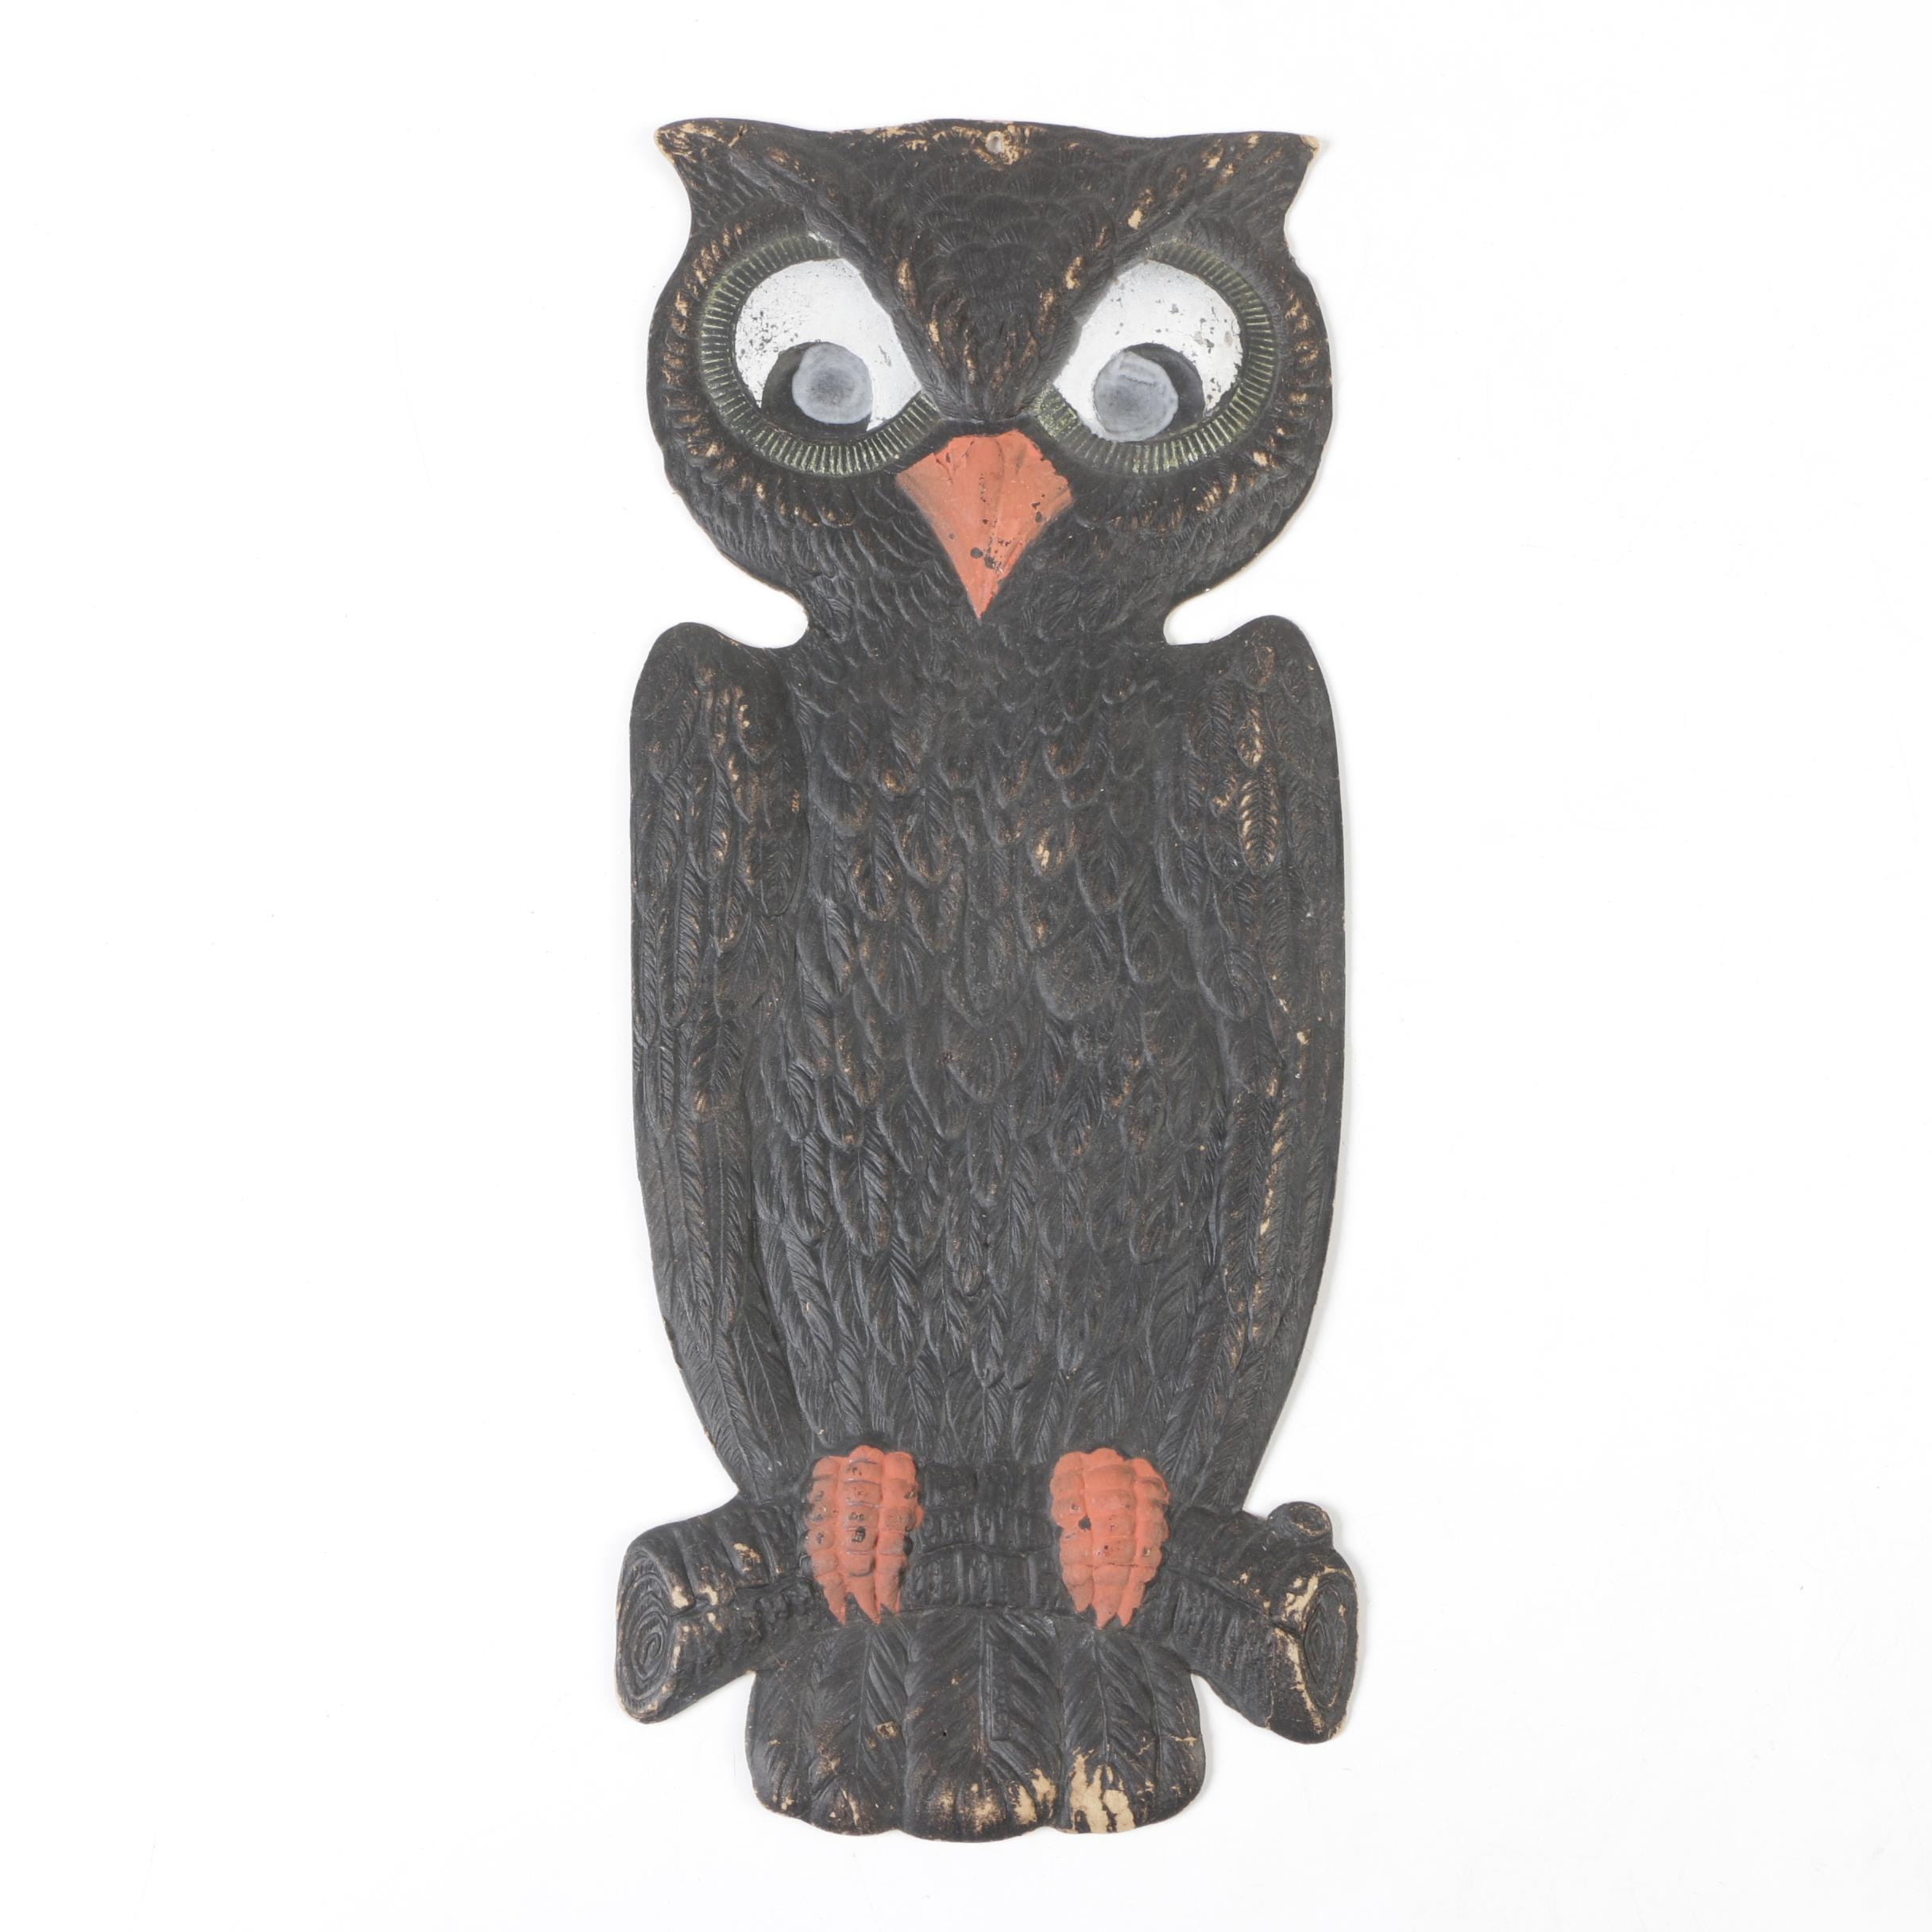 German Pressed Cardboard Owl Halloween Decoration, Early 20th Century